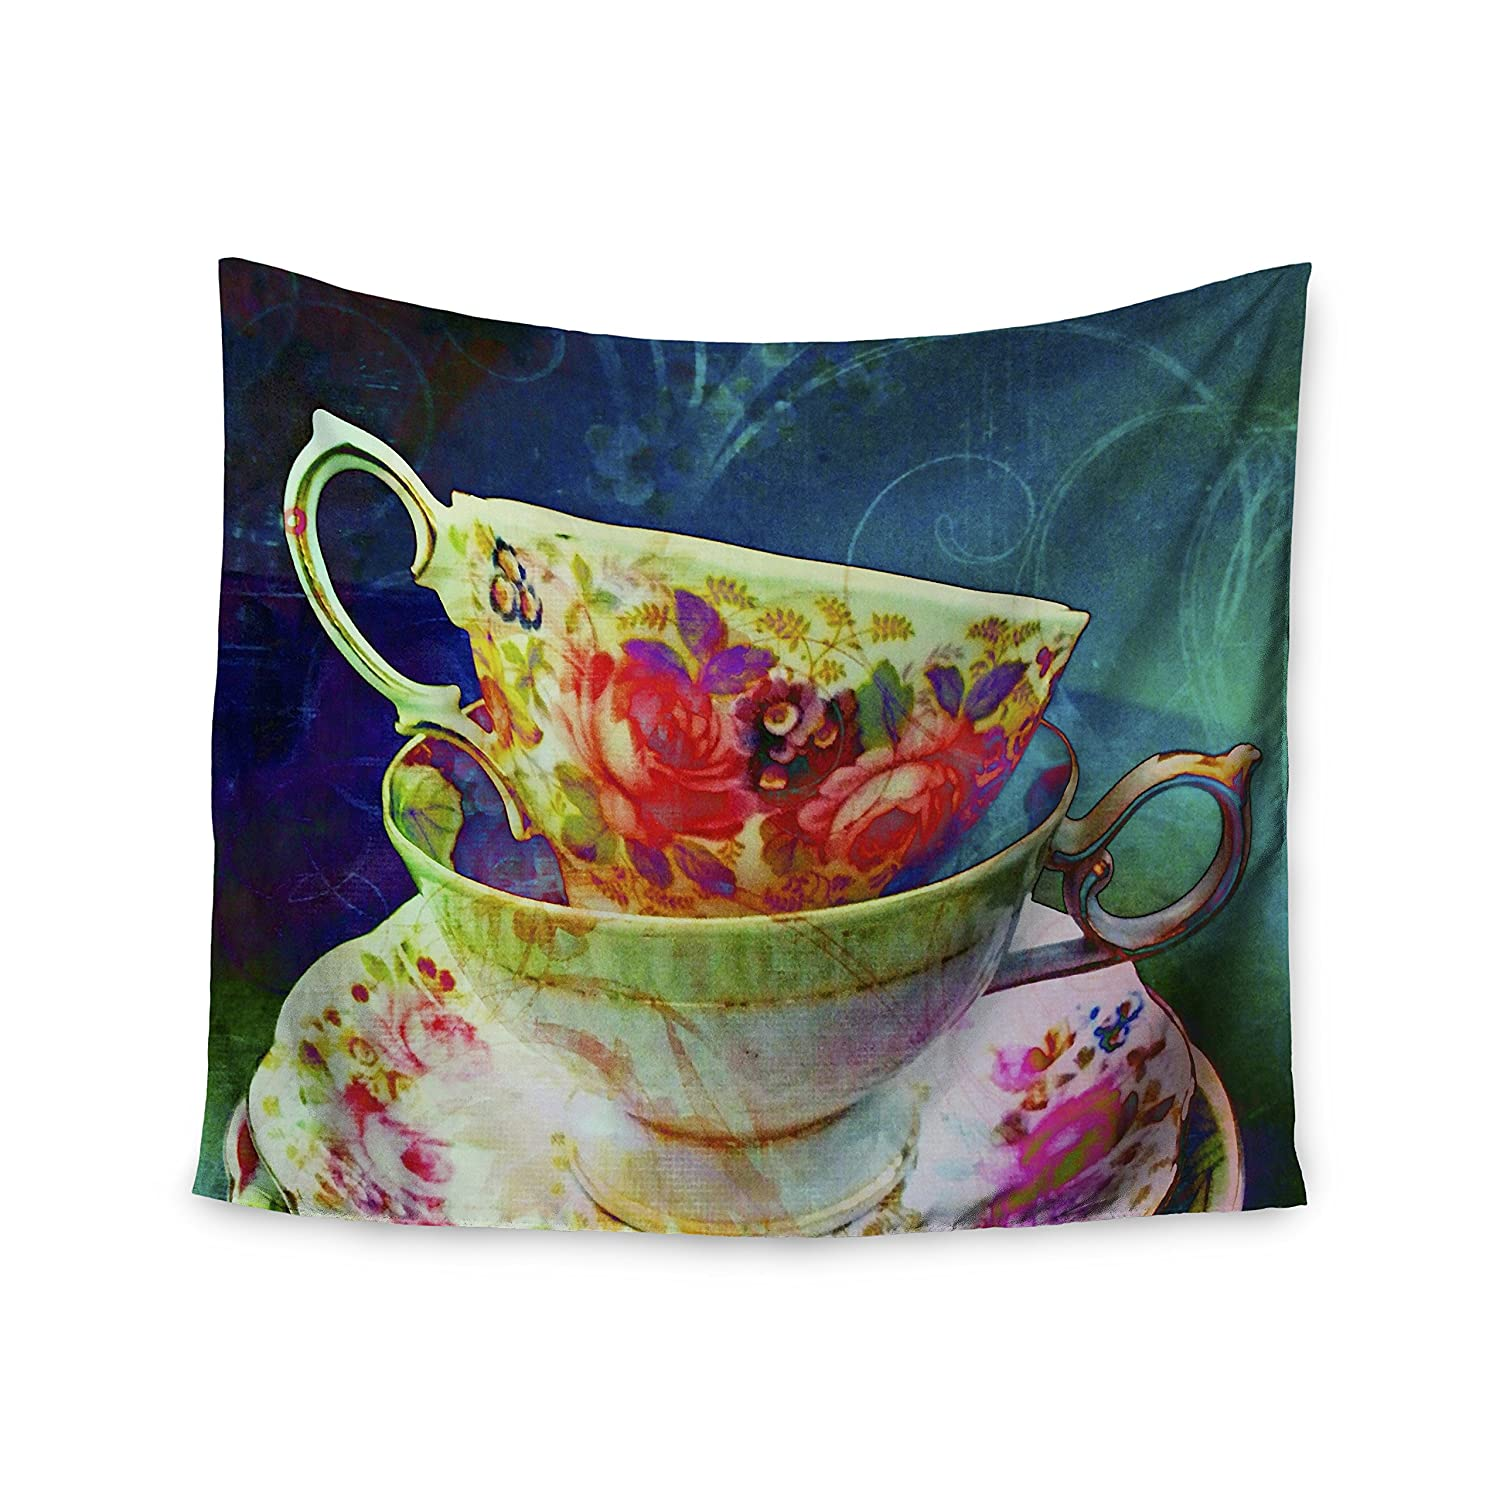 Kess InHouse Alyzen Moonshadow Mad Hatters T-Party V Yellow Green Wall Tapestry 68 X 80